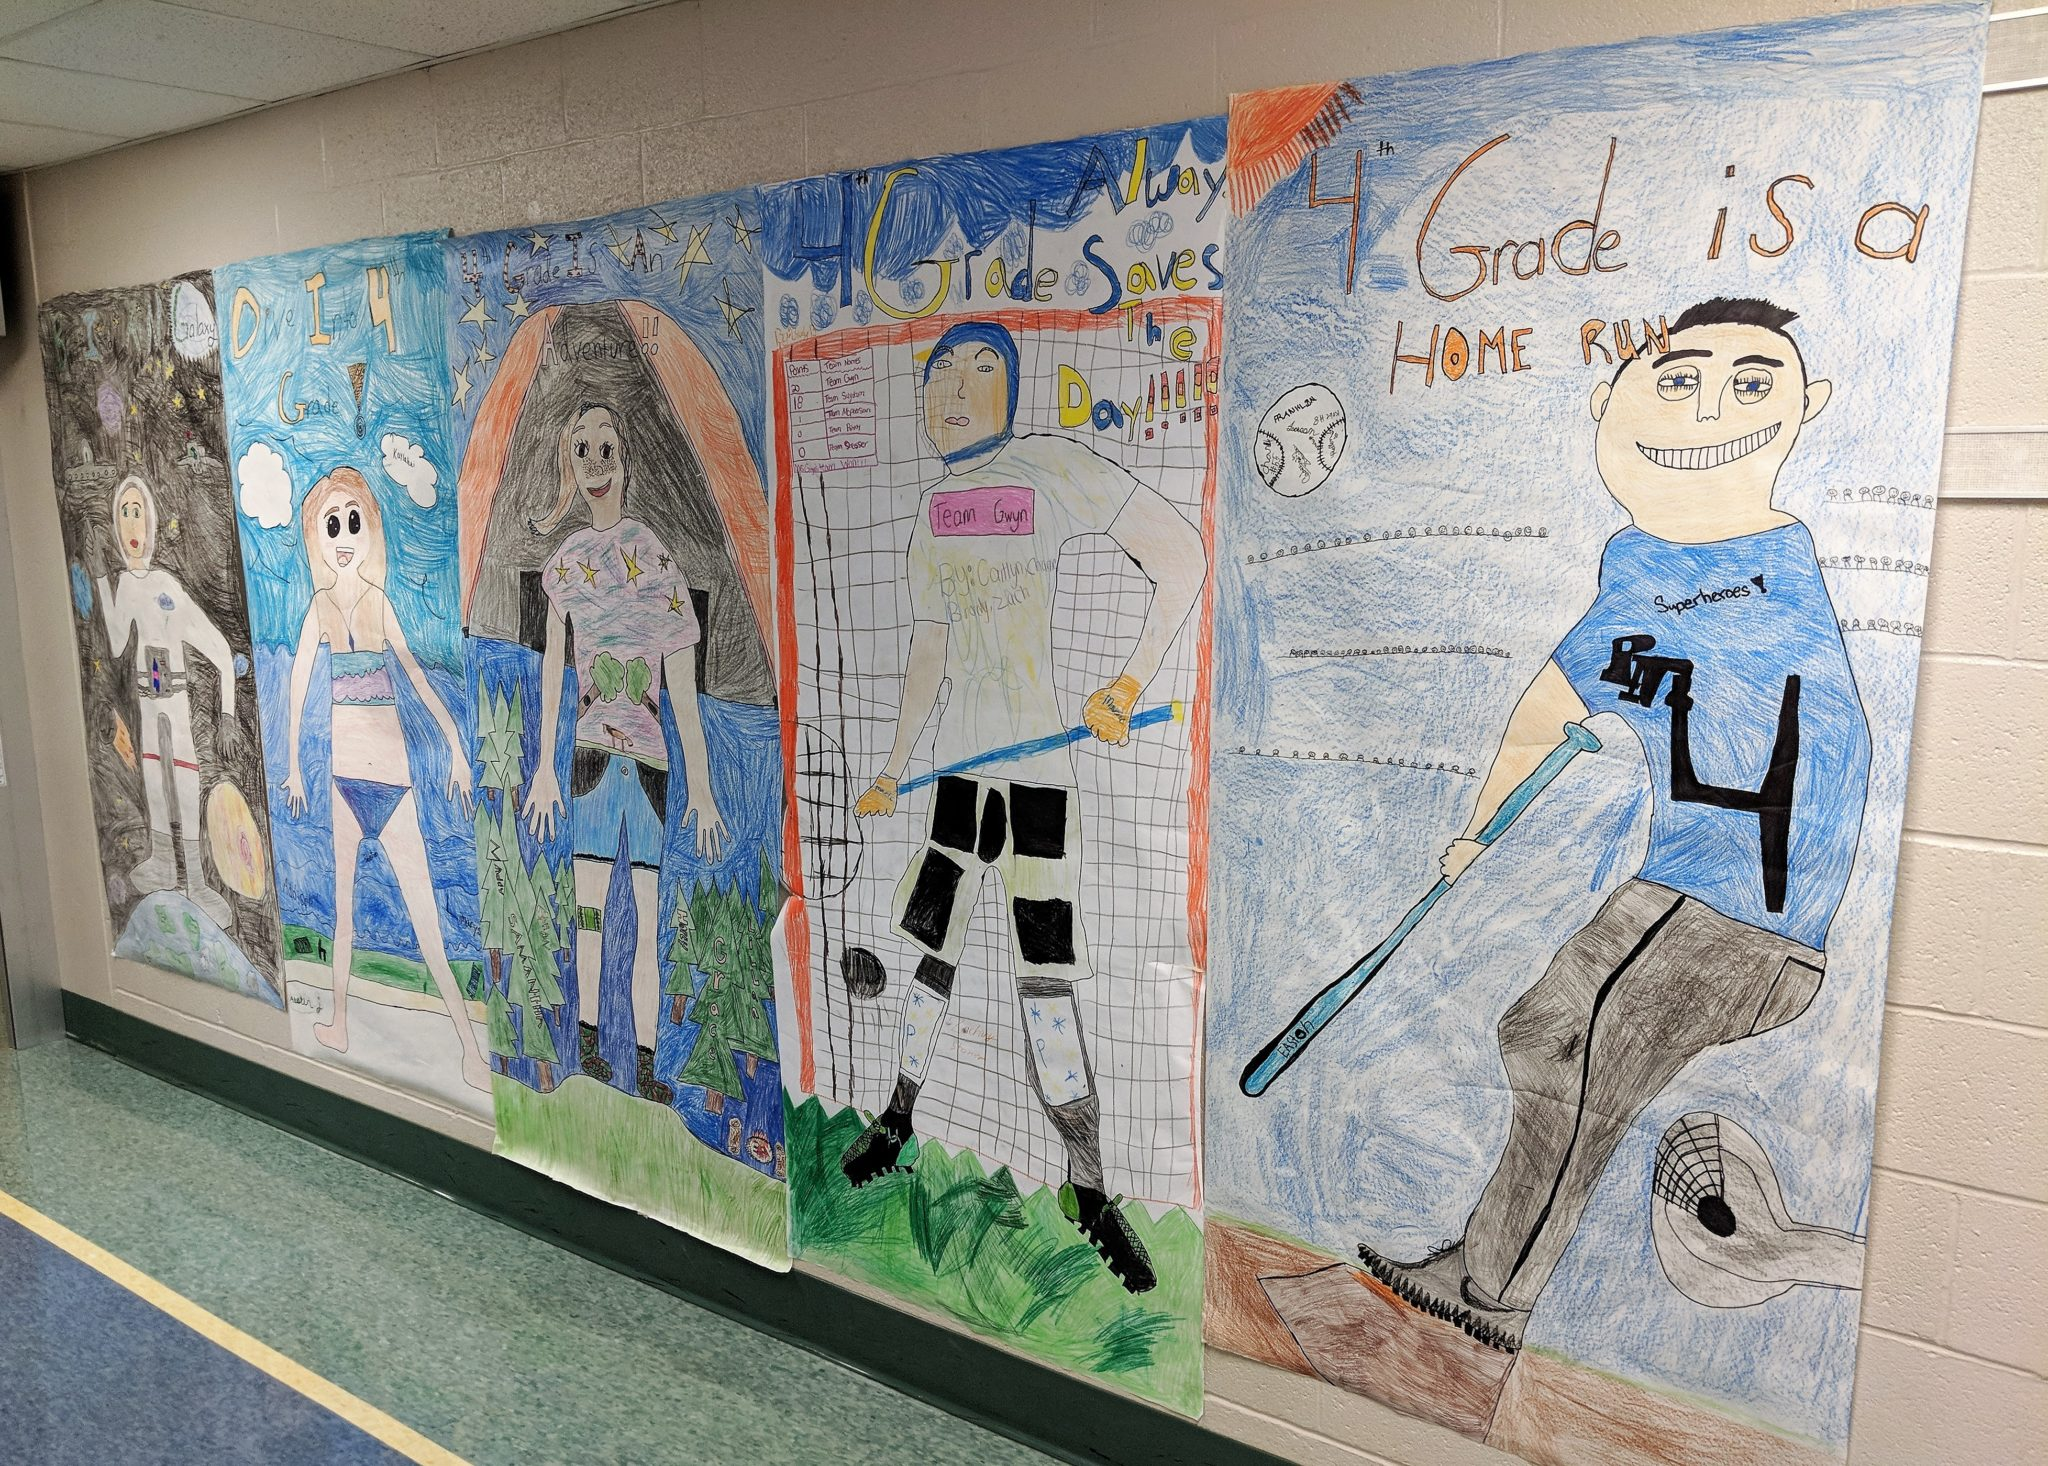 Wall posters encourage students.